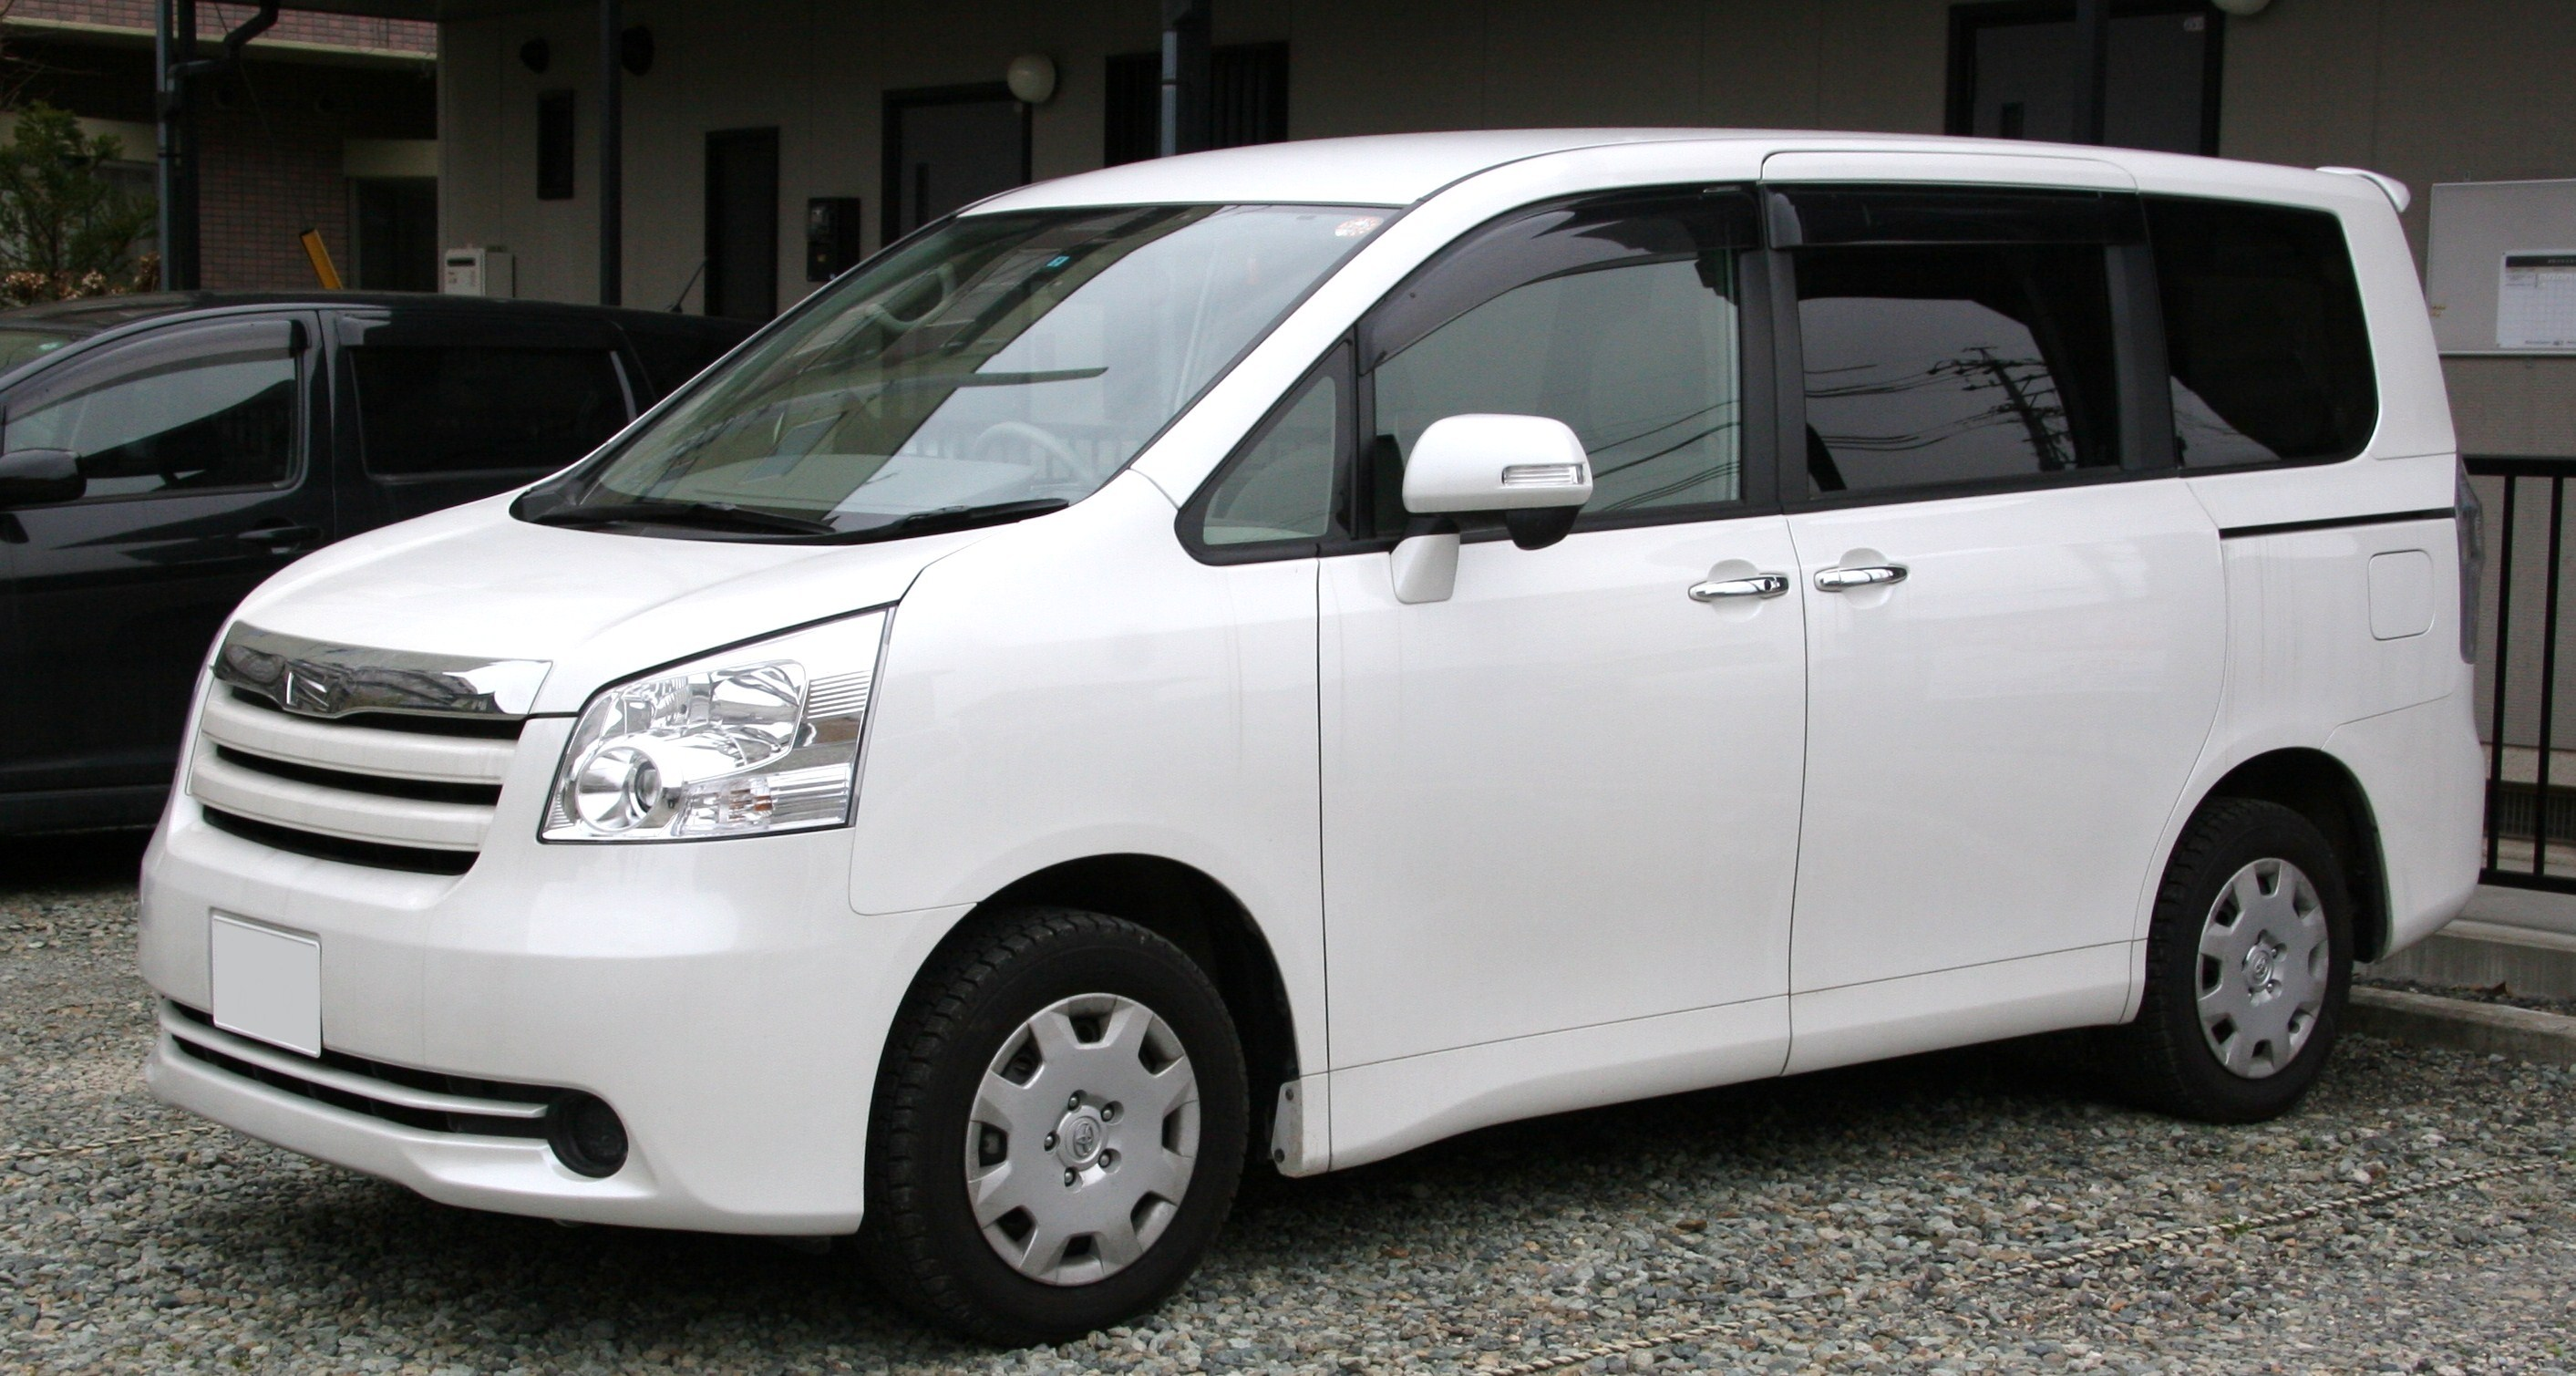 Toyota Noah 2013: Review, Amazing Pictures and Images – Look at the car